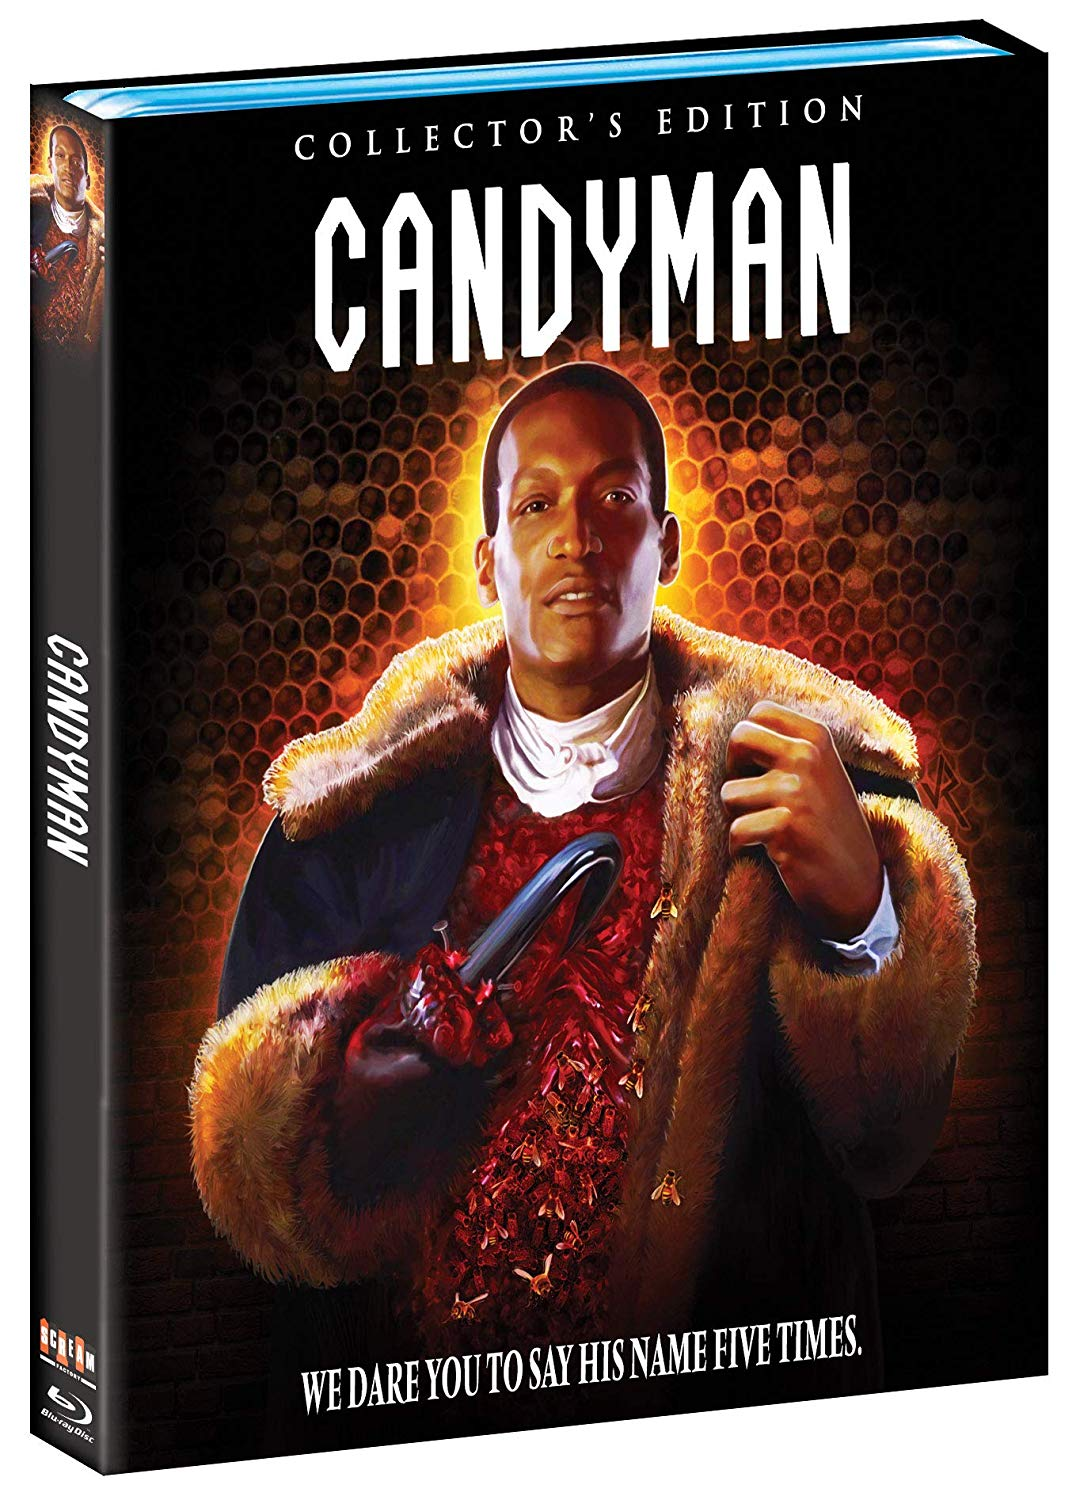 Candyman Movie Wallpapers 92 images in Collection Page 1 1076x1500